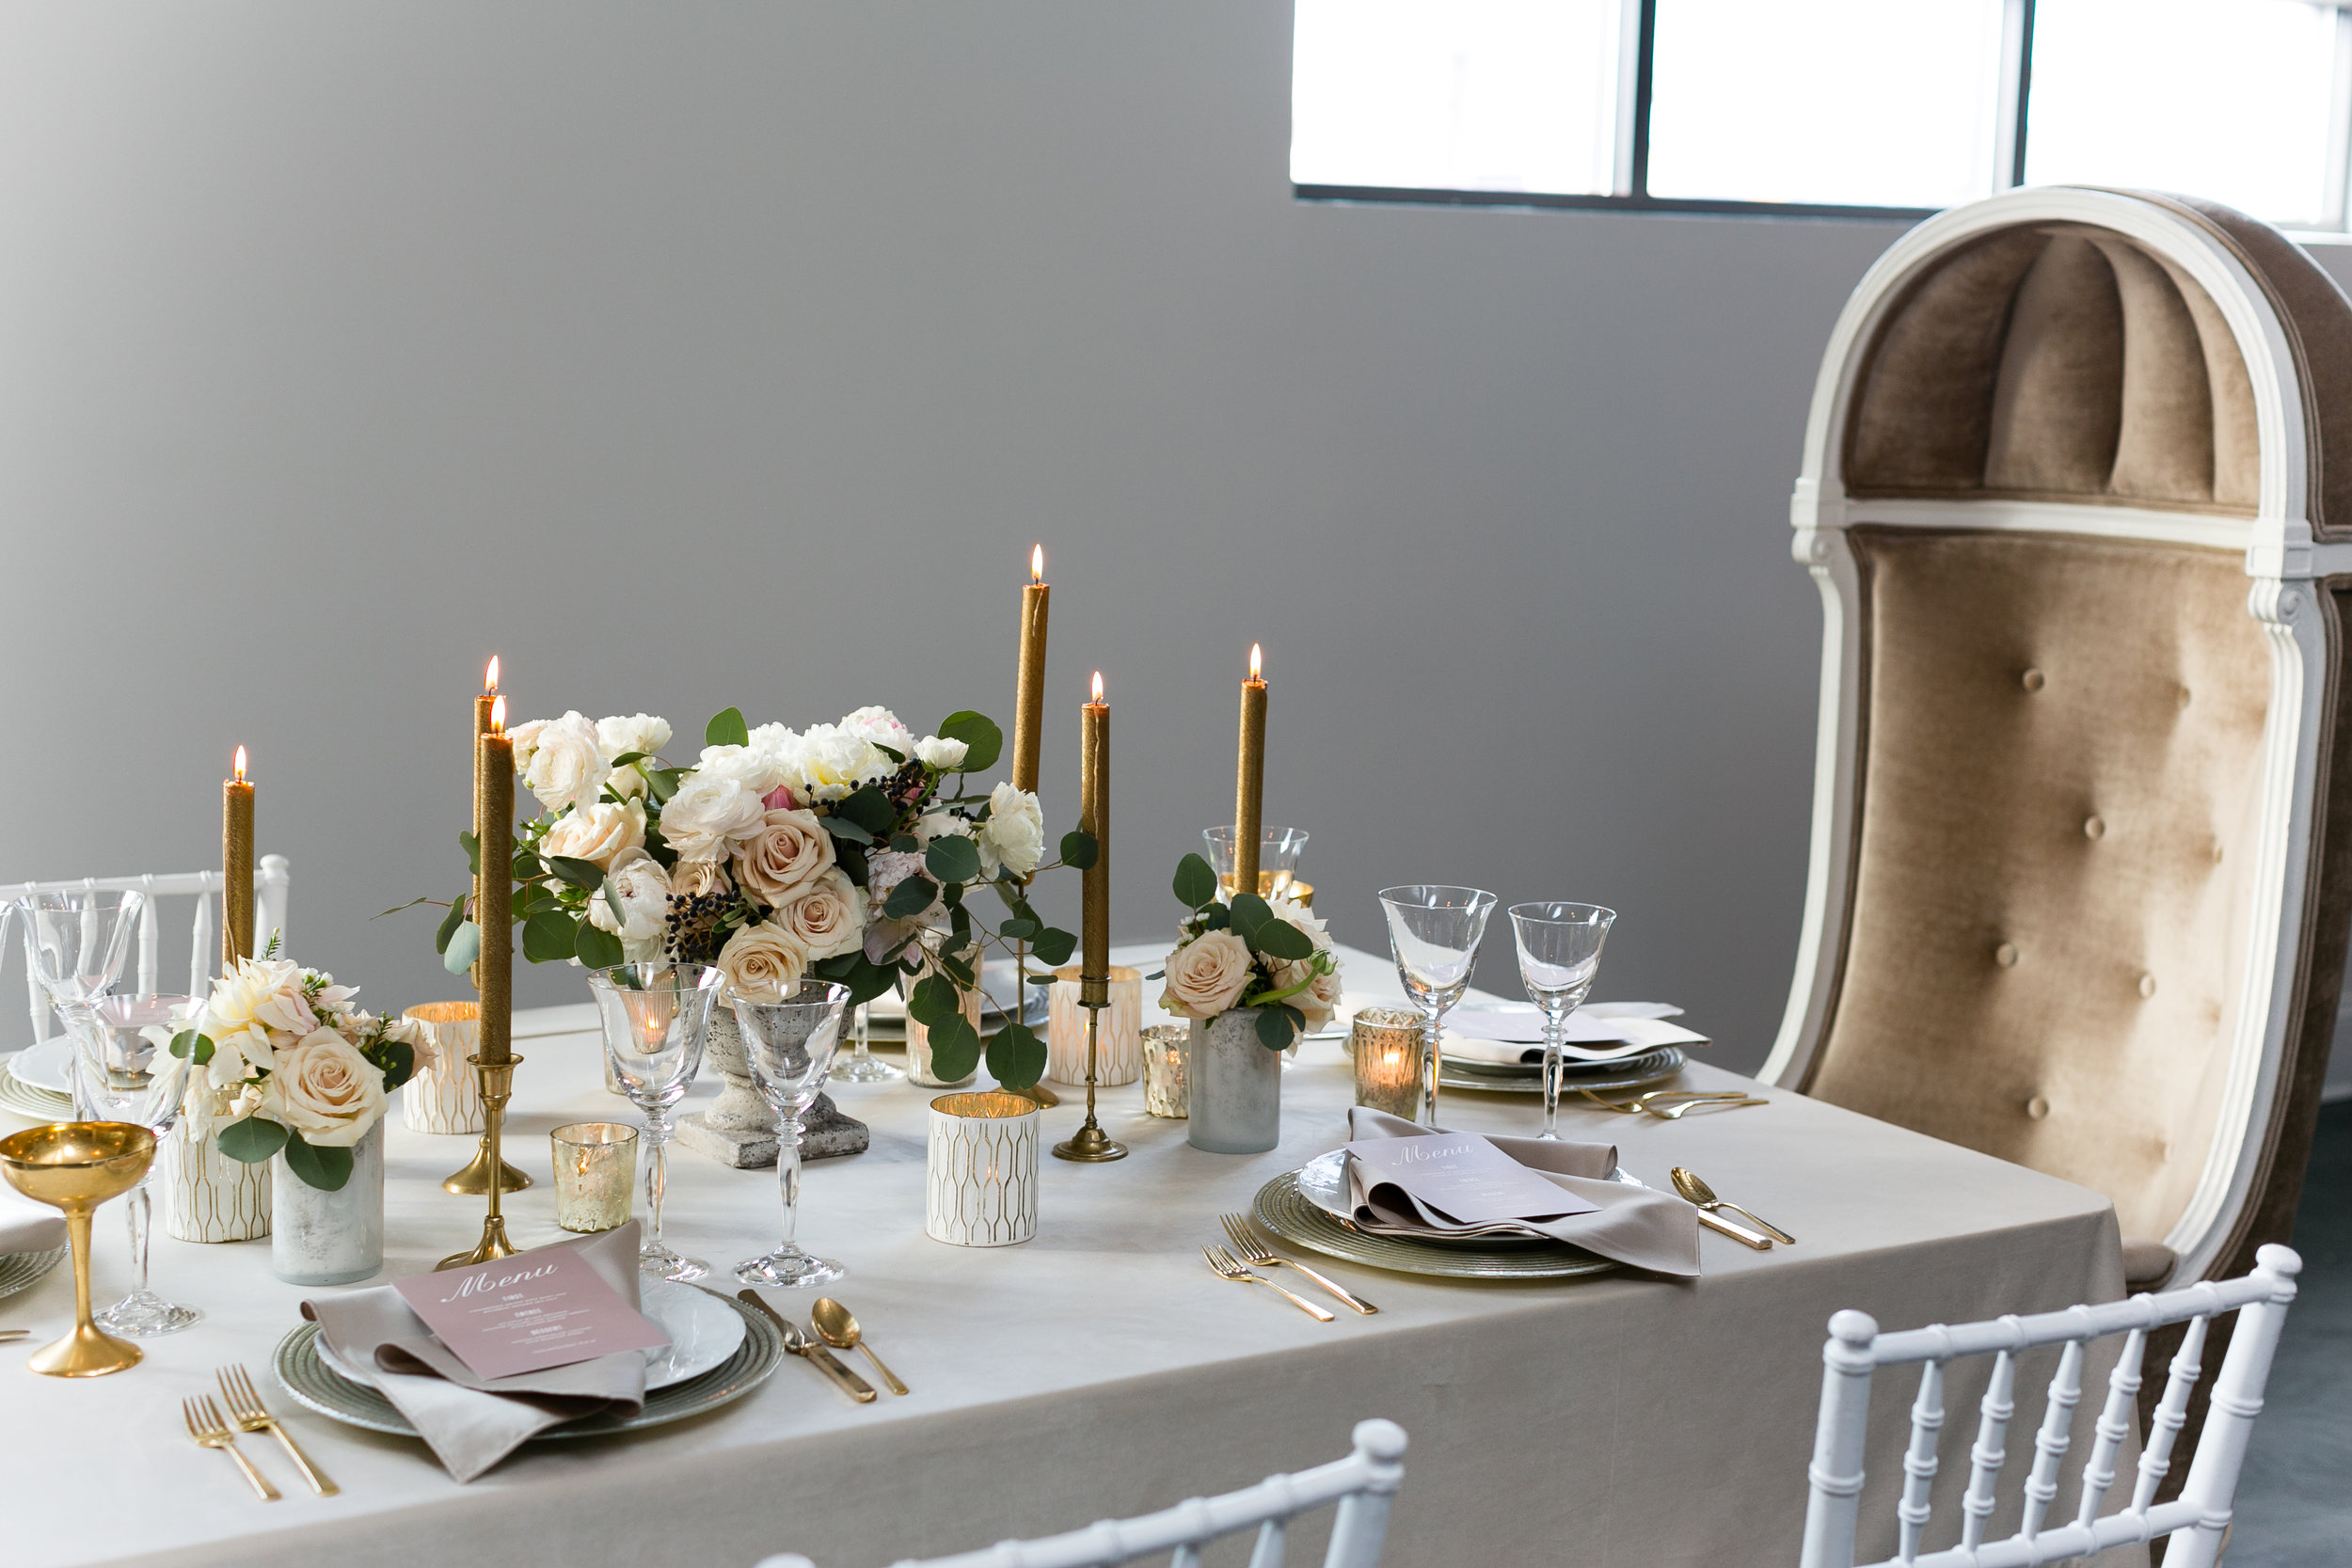 BBJ Linen, photo by Emilia Jane Photography at the Lakewood